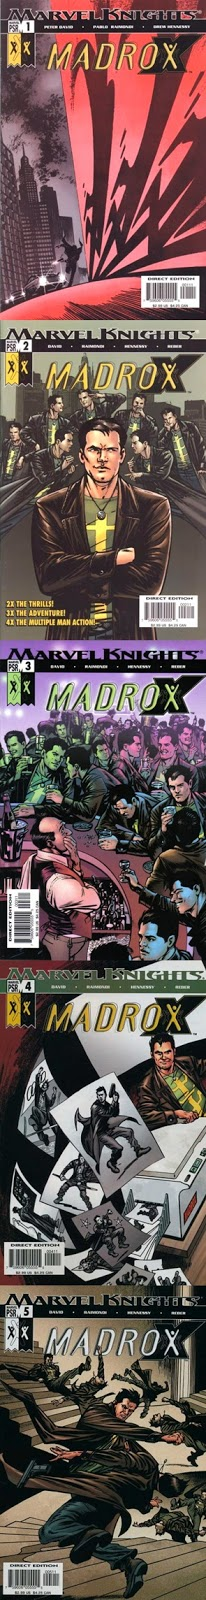 Madrox - Peter David Pablo Raimondi